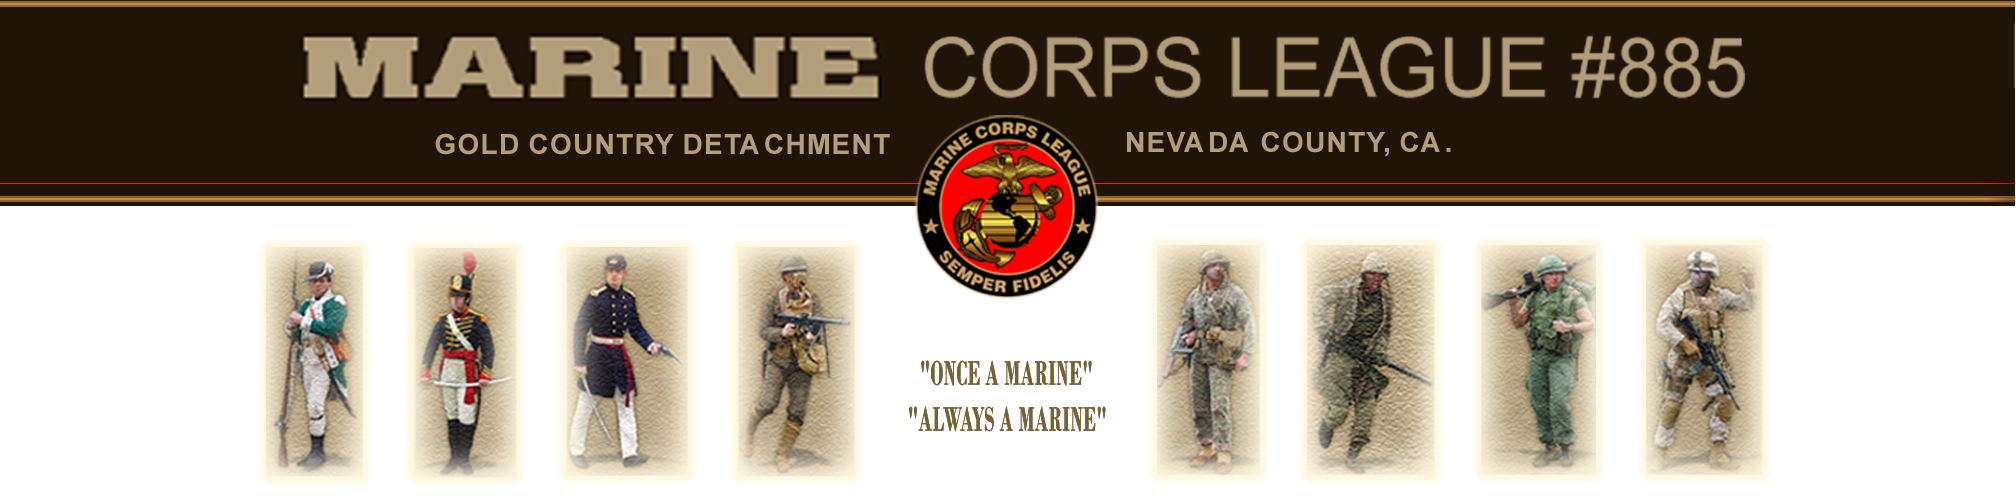 The Marine Corps League